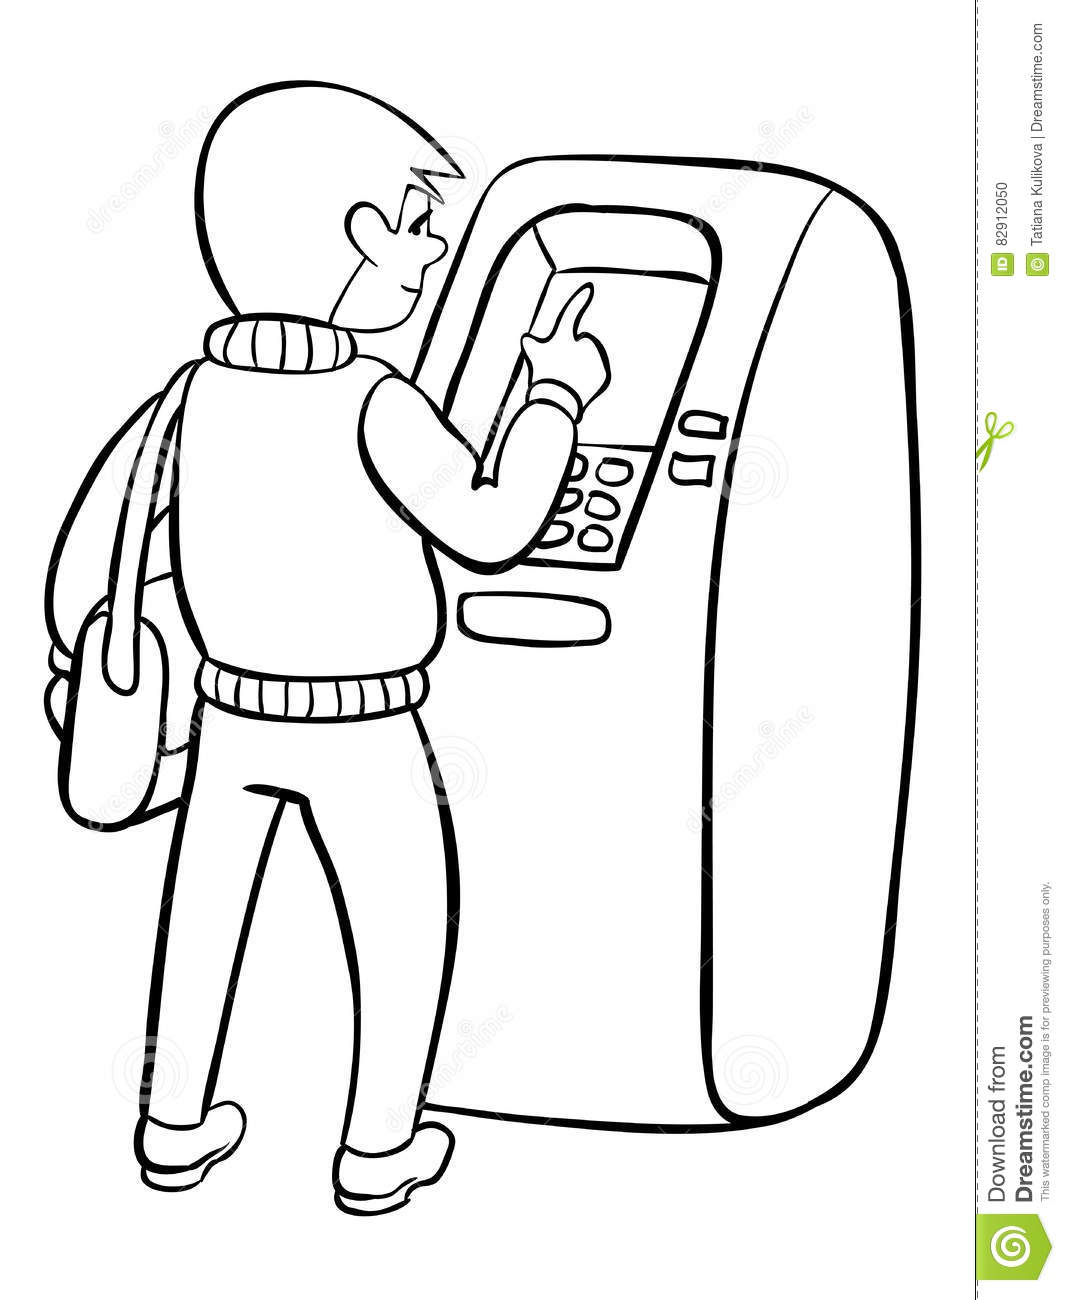 bank themed coloring pages - photo#43